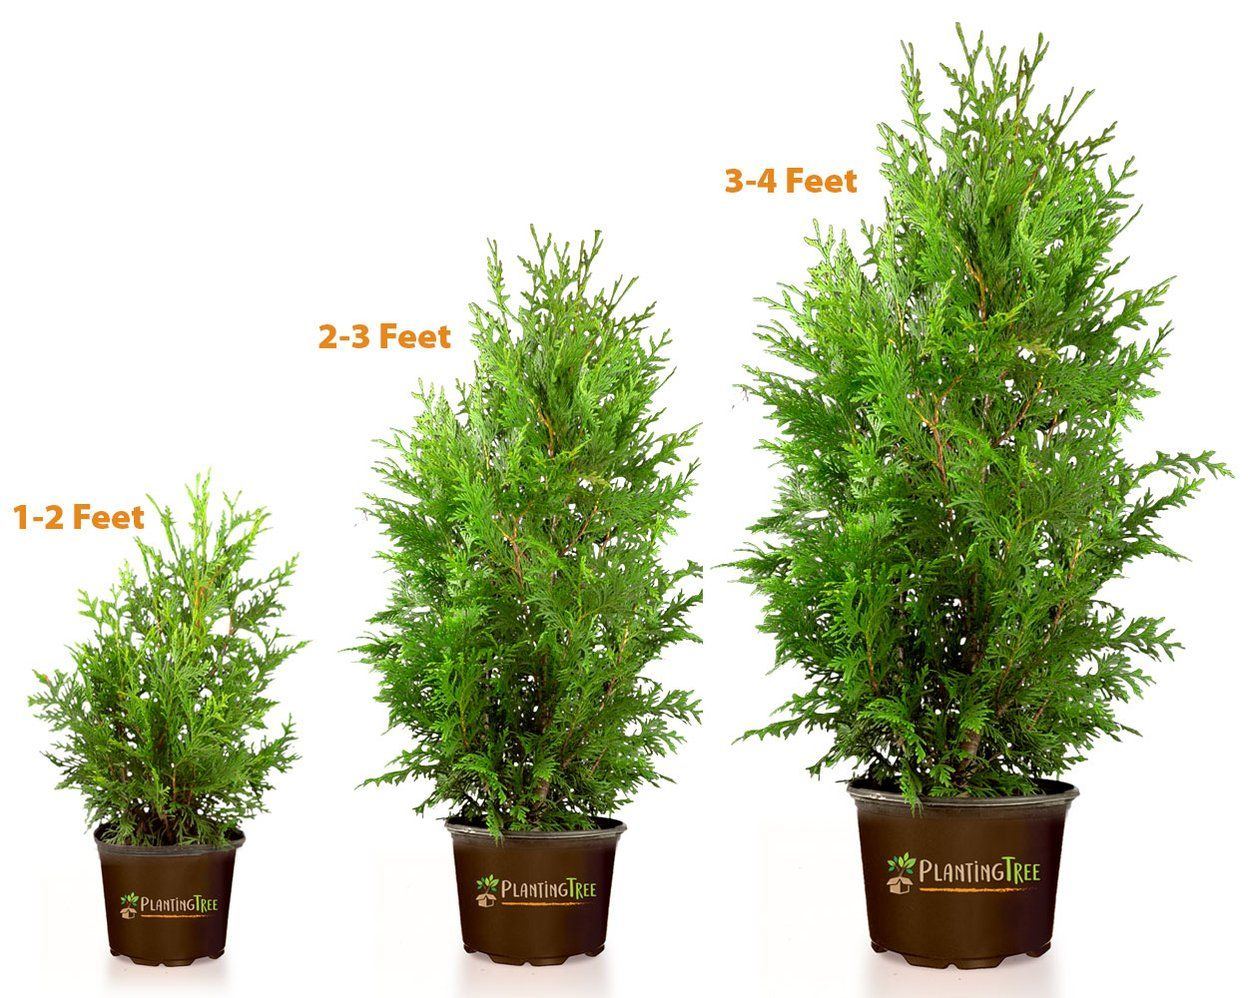 Thuja Green Giant In 2020 Thuja Green Giant Green Giant Tree Giant Arborvitae